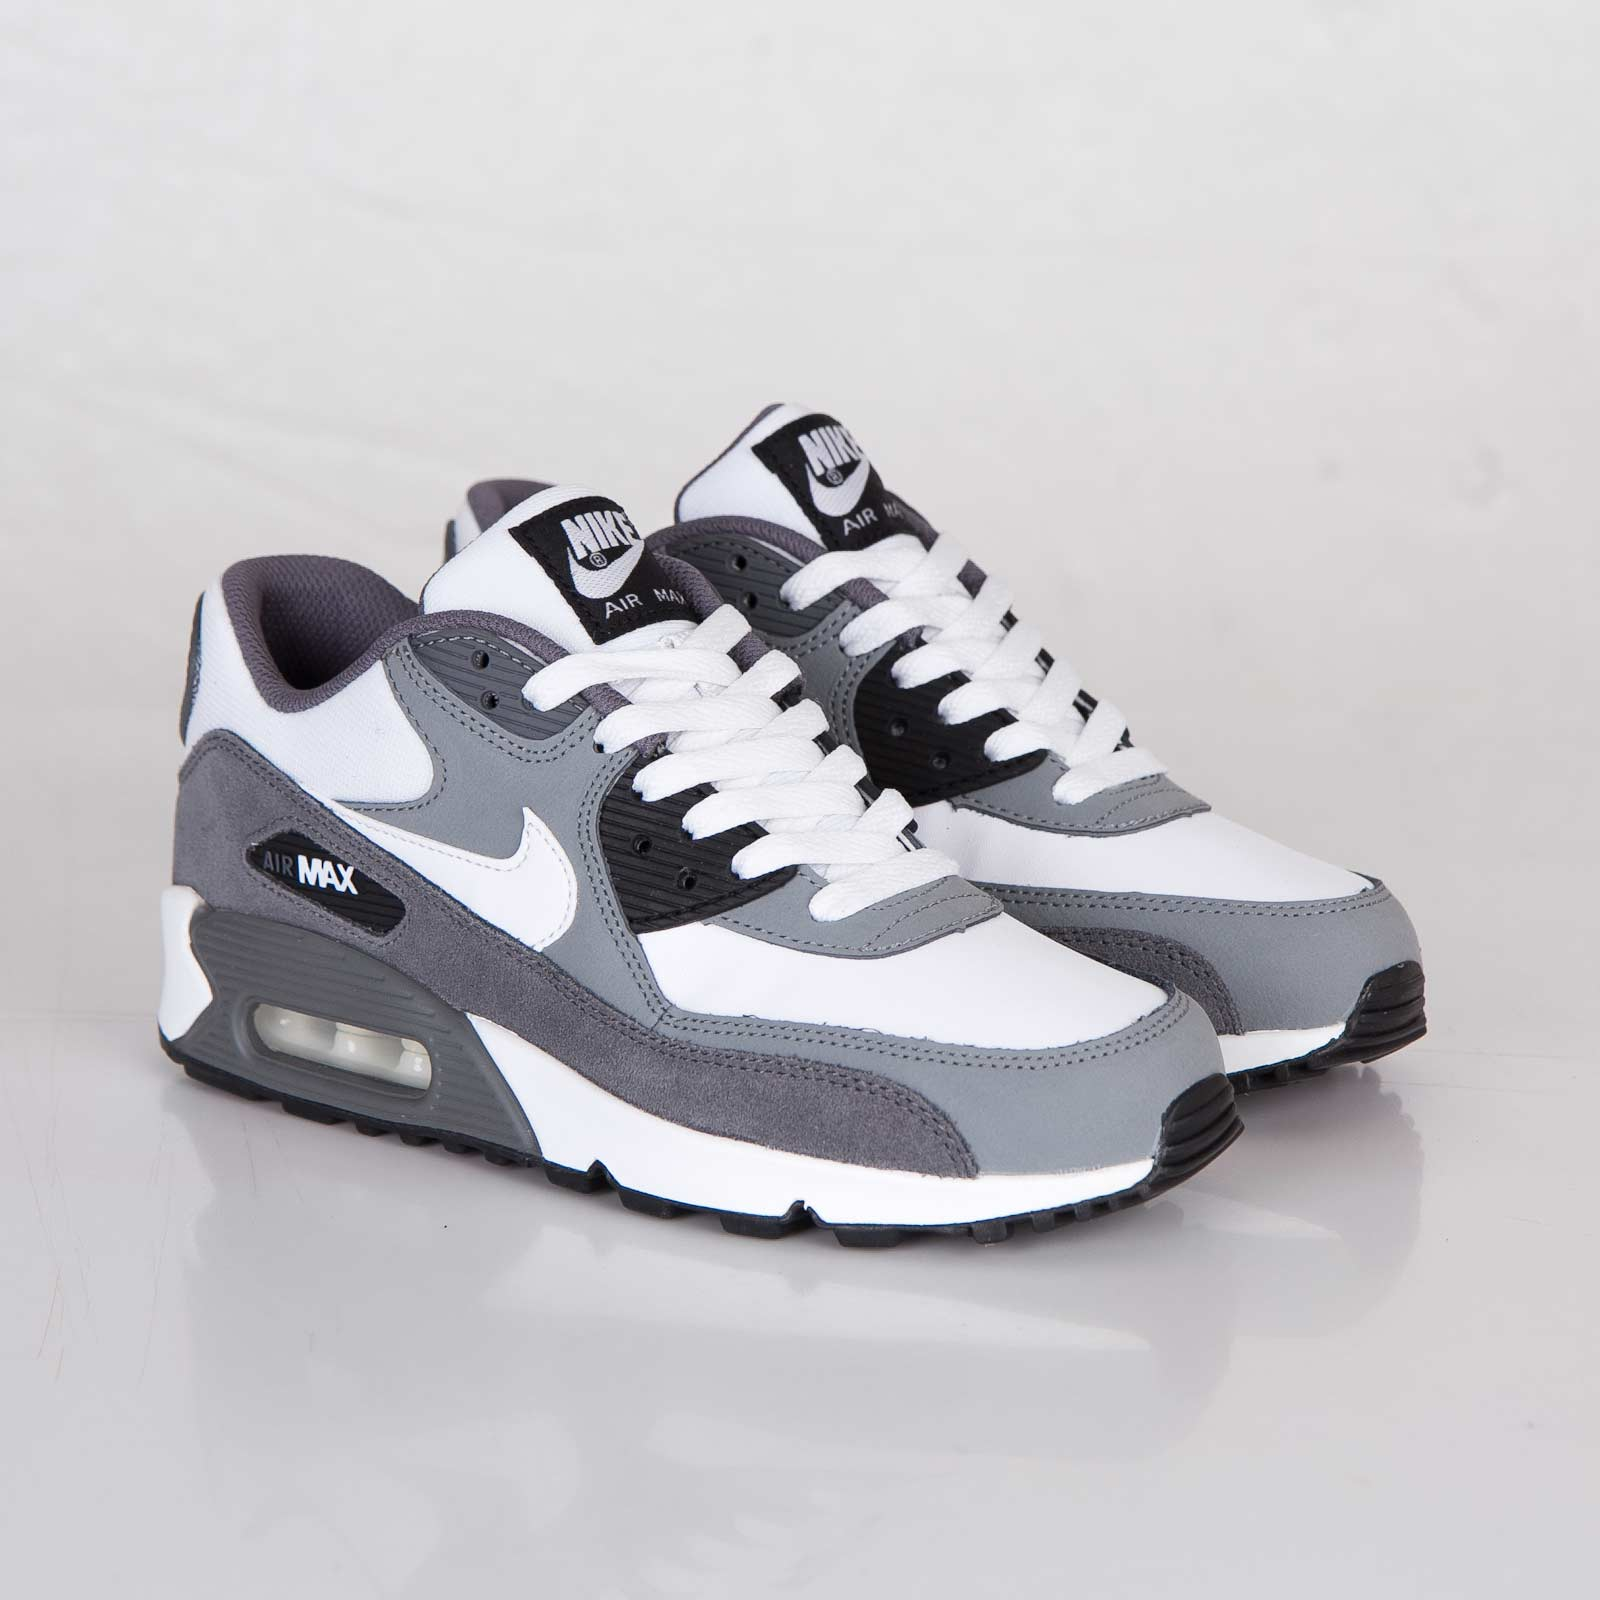 Nike Air Max 90 (GS) 307793 123 Sneakersnstuff I